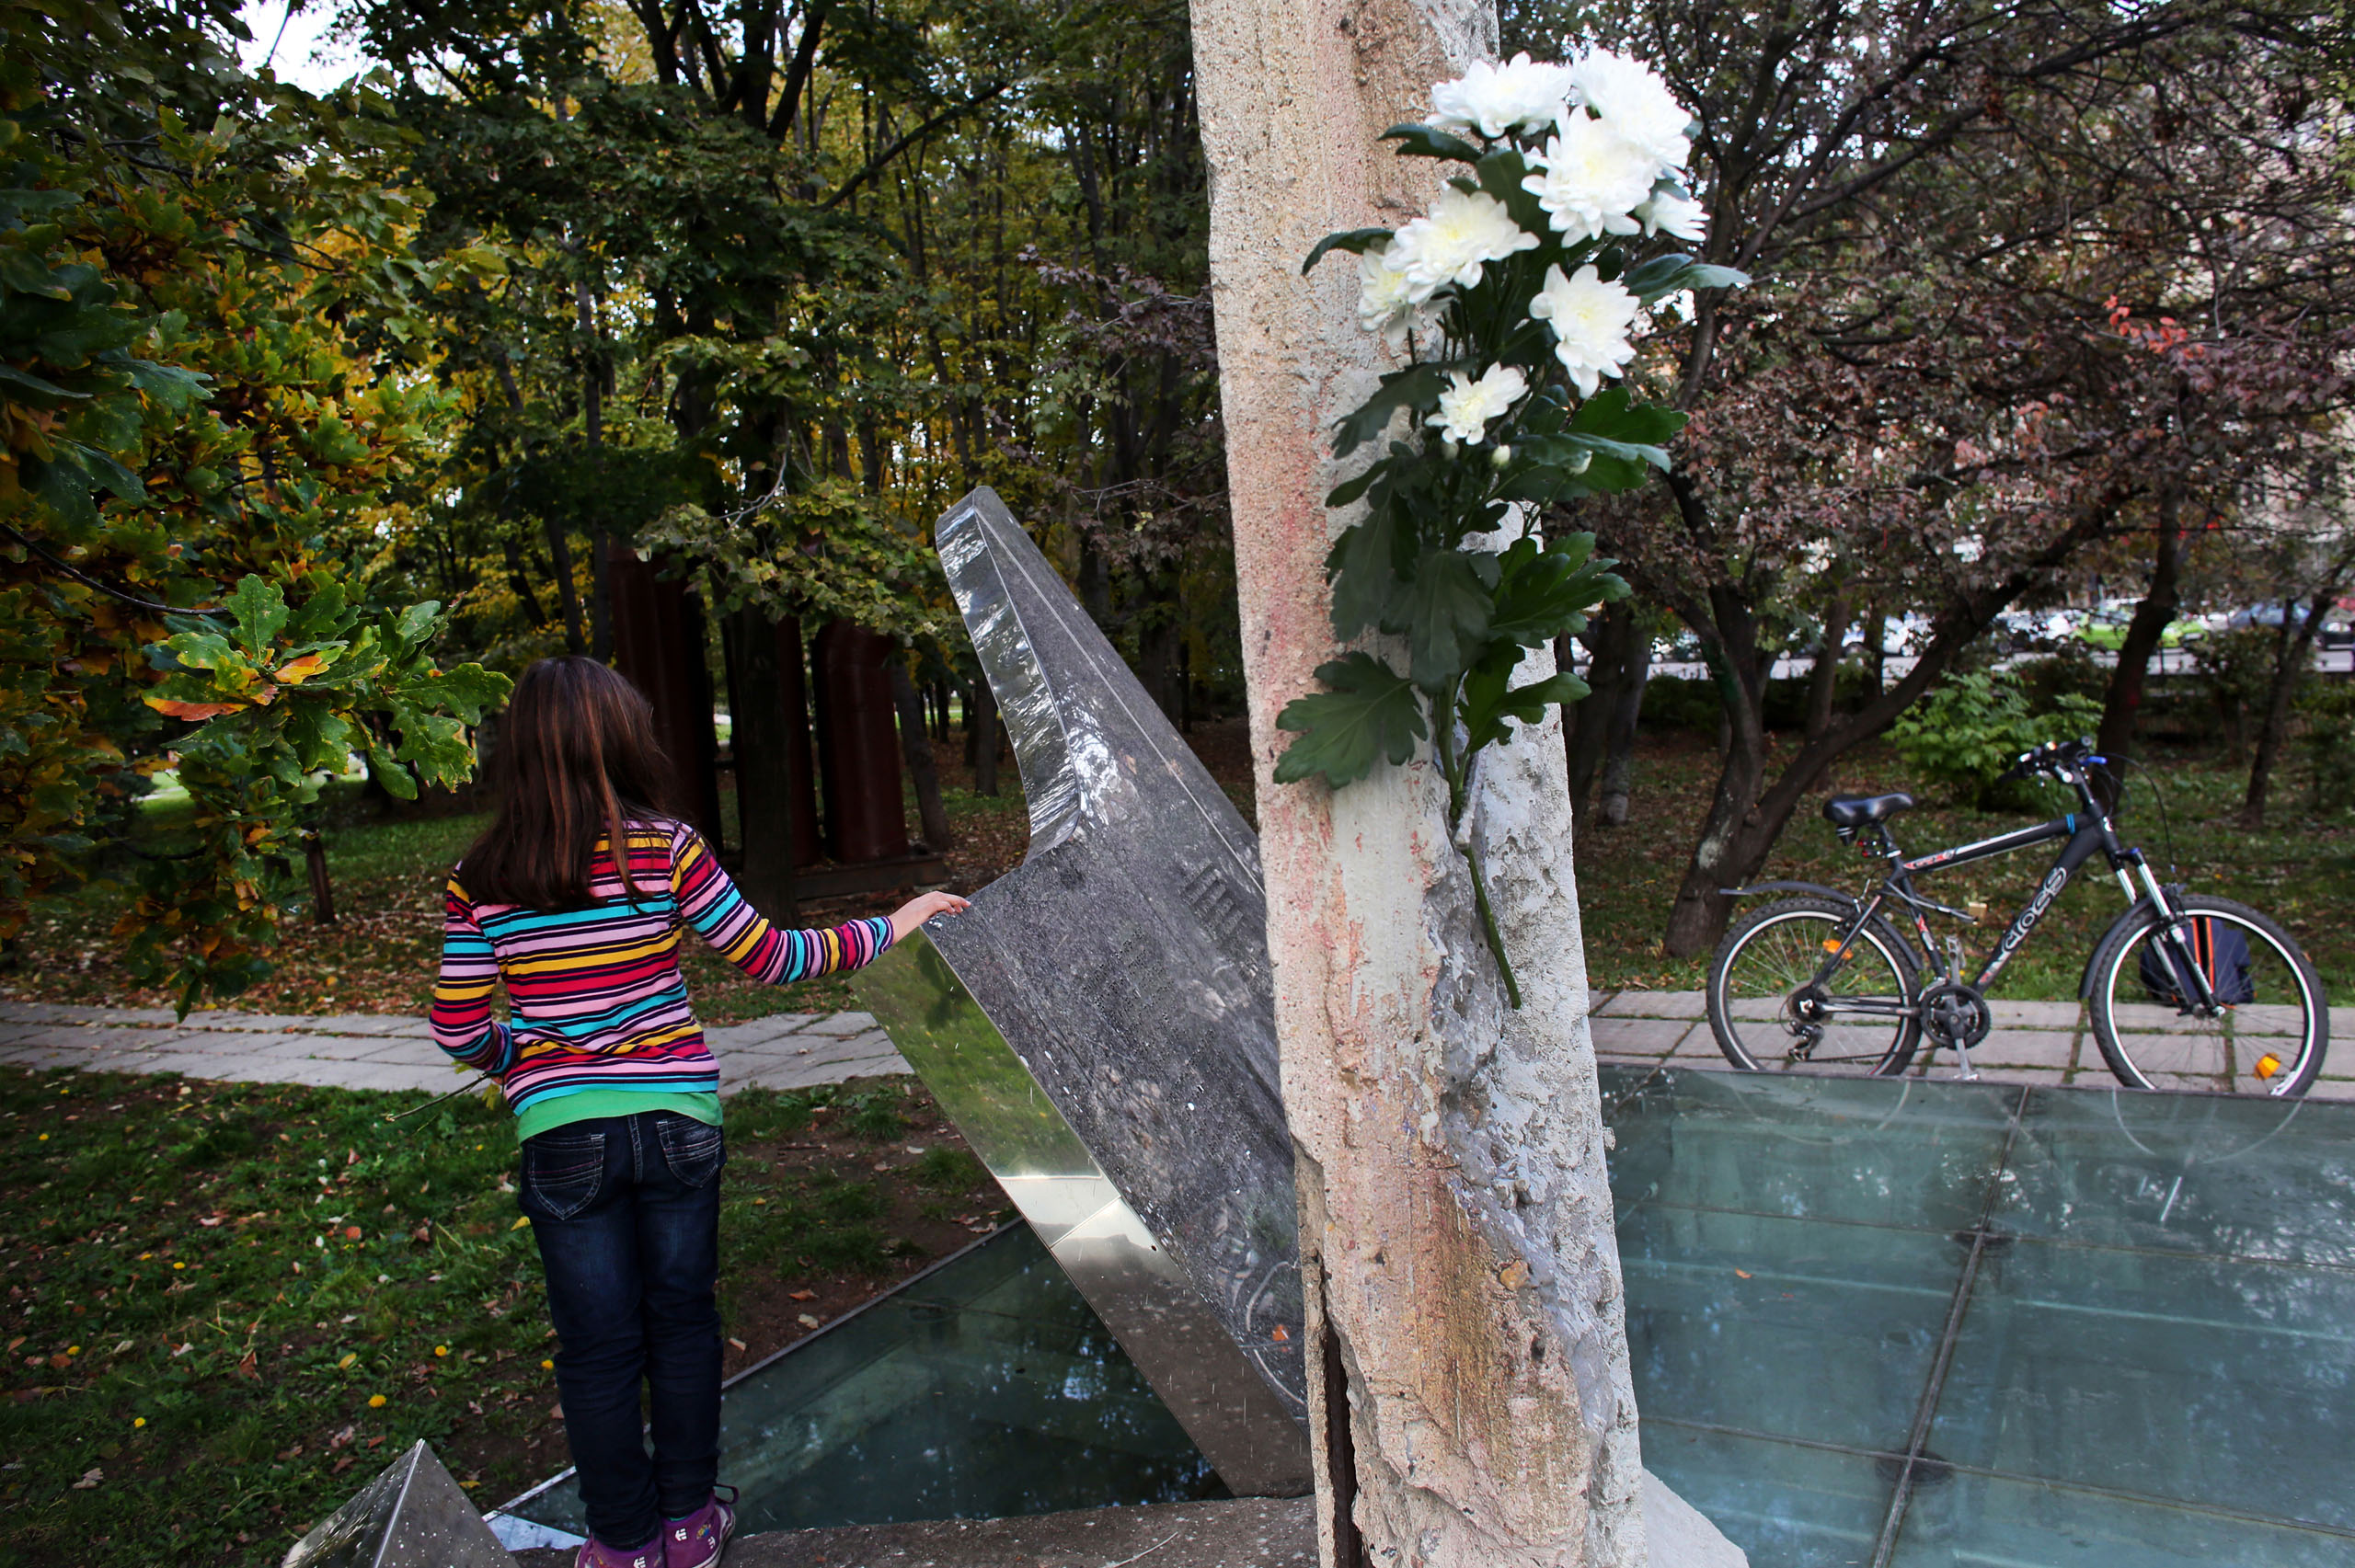 A child leans on a piece of the Berlin Wall on Nov. 9, 2014, on the 25th anniversary of the fall of the wall. This piece was gifted to Bulgaria's capital Sofia in 2006.